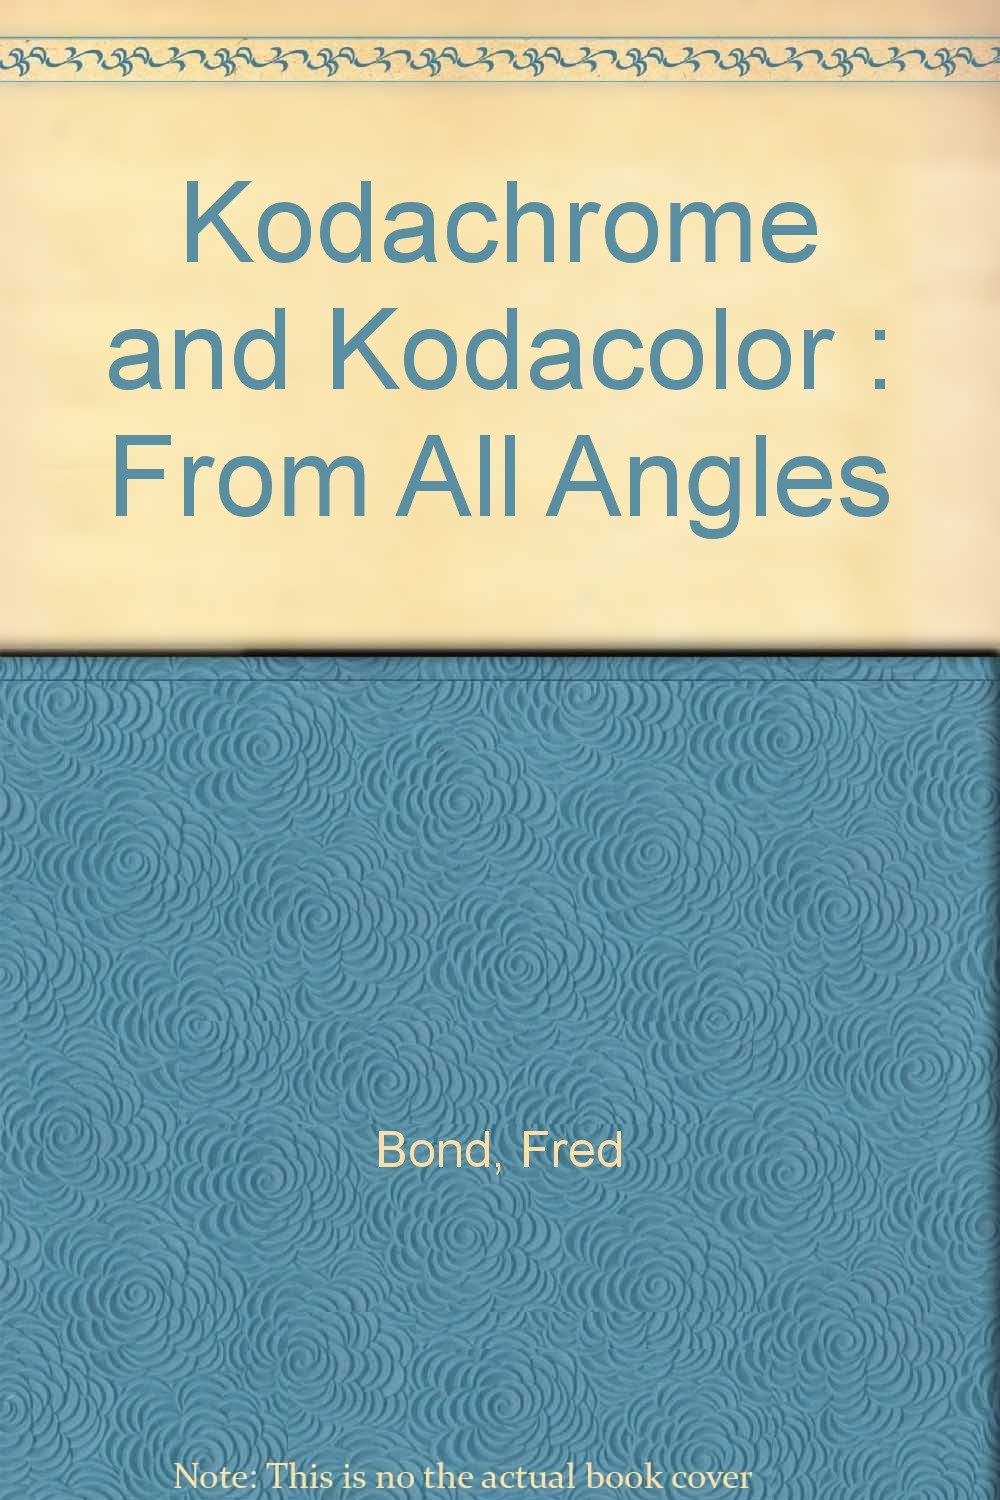 Kodachrome and Kodacolor : From All Angles